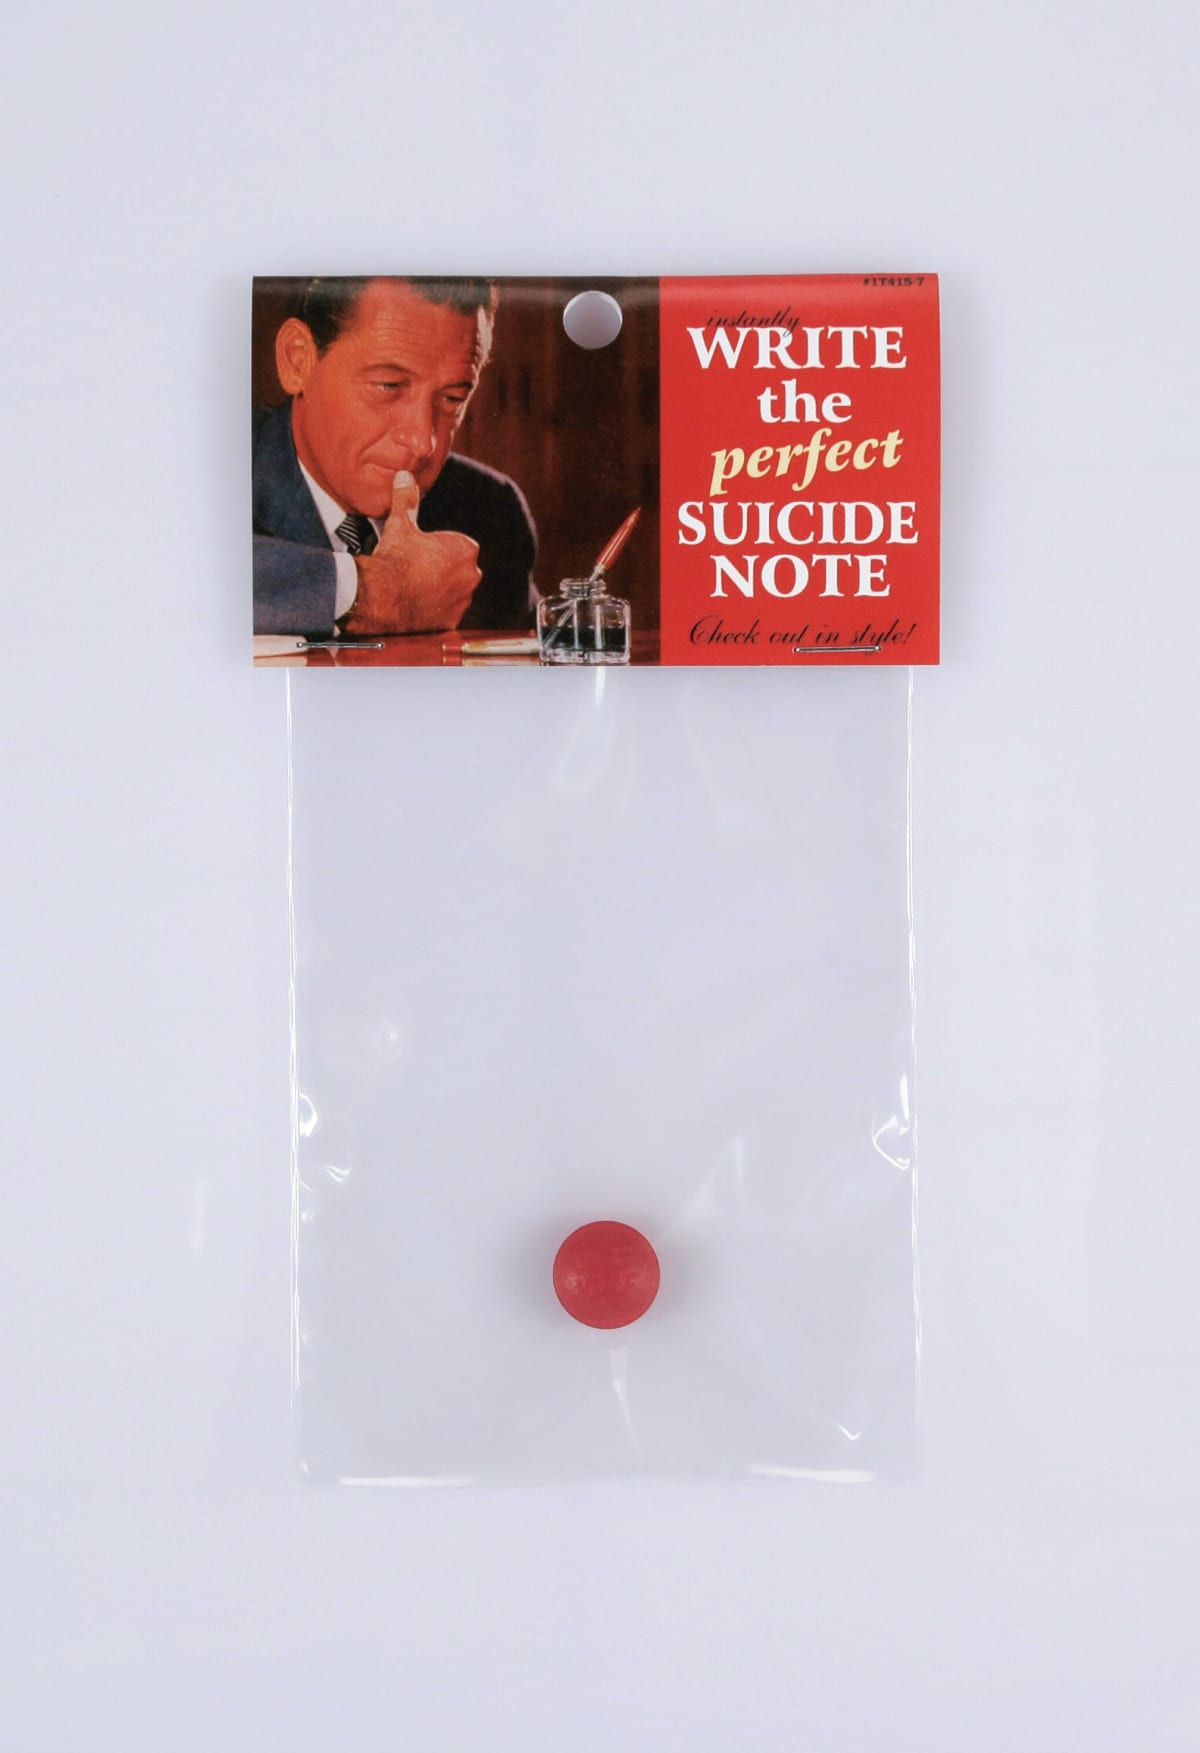 Write the perfect suicide note